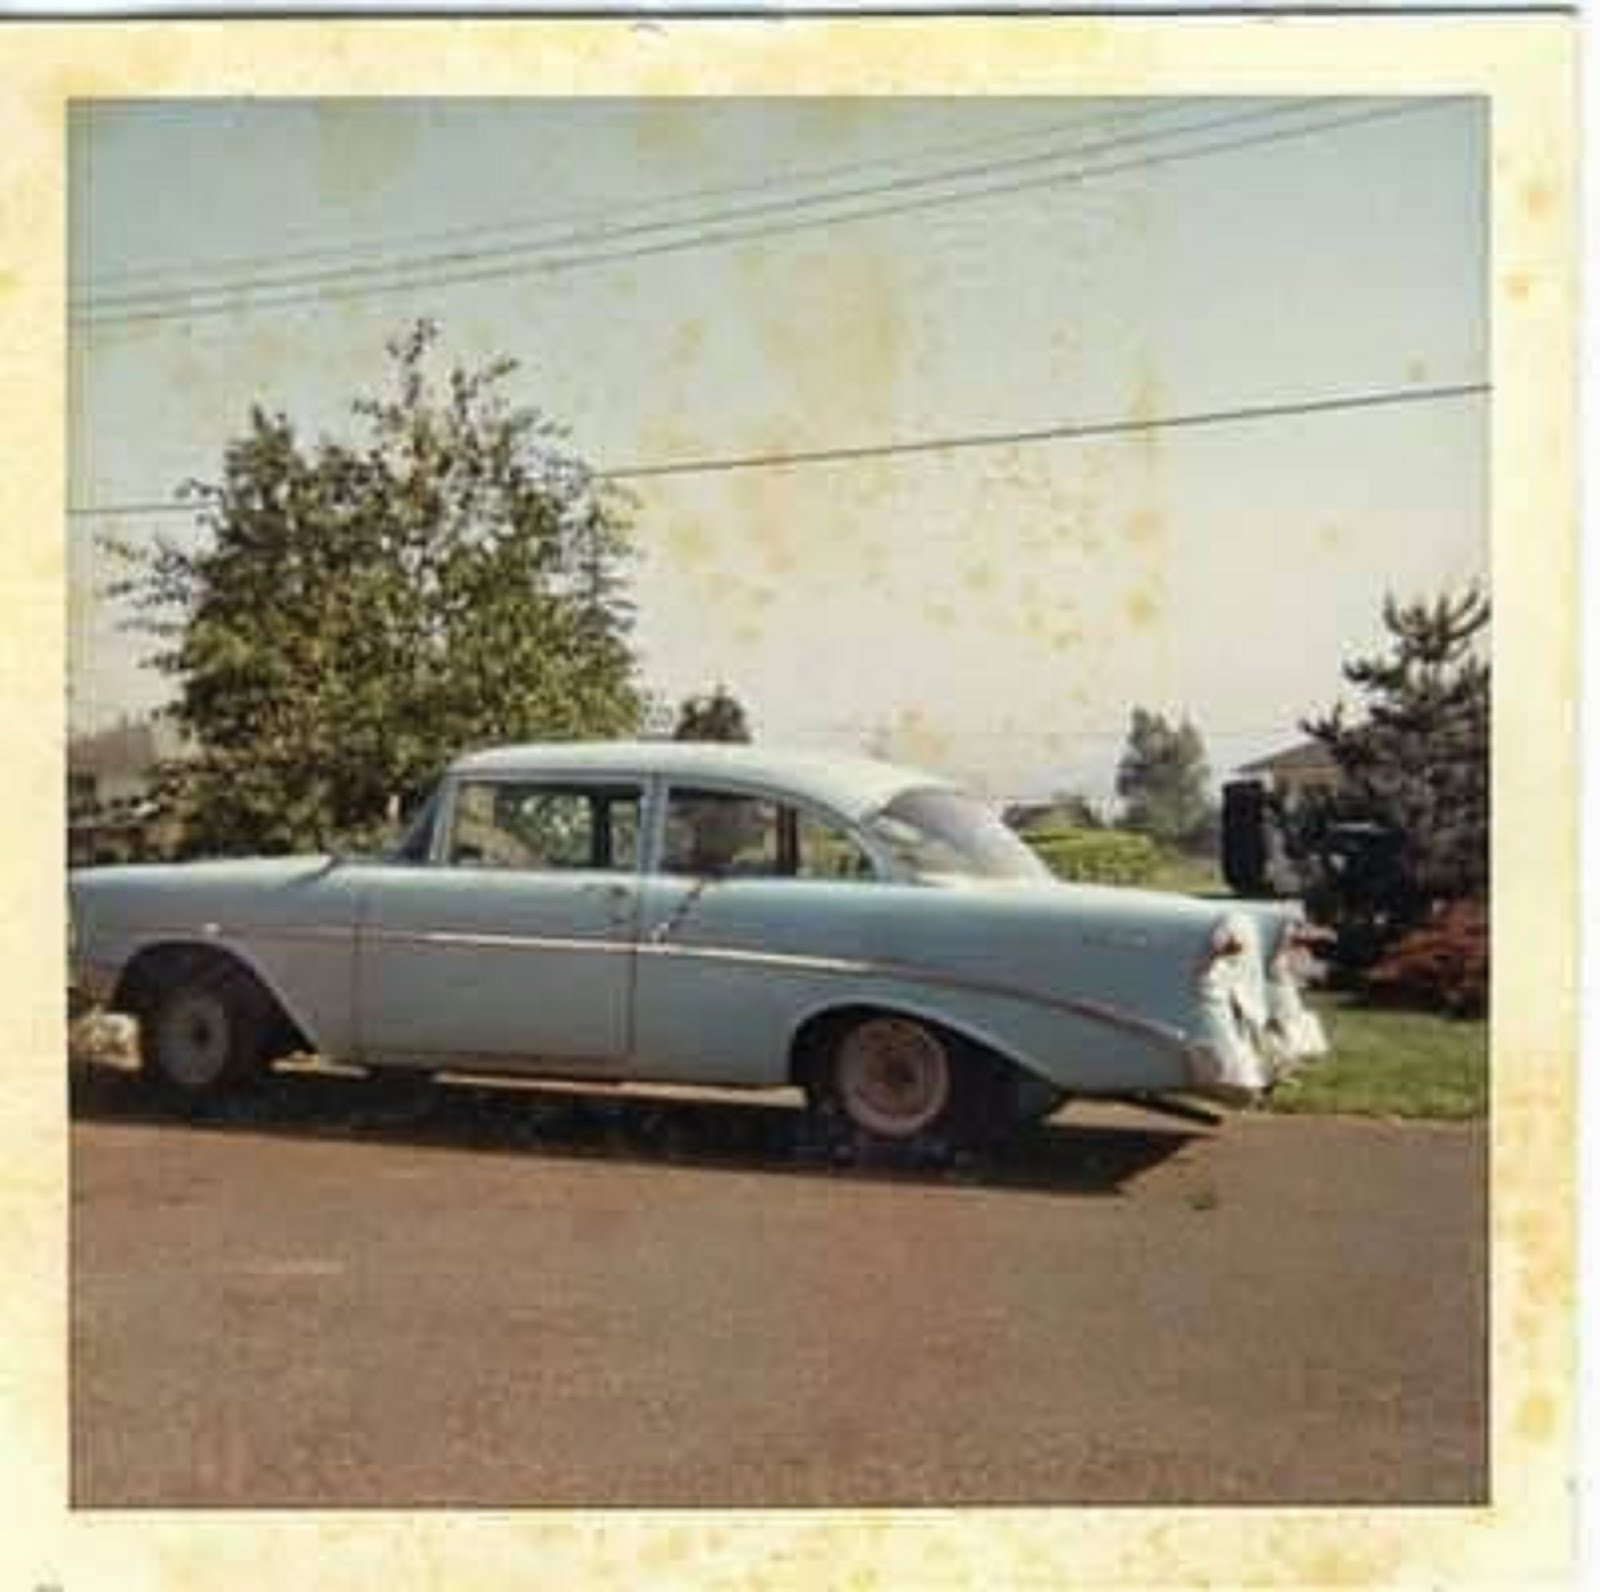 MY 1956 CHEVROLET - JAN 19, 1969